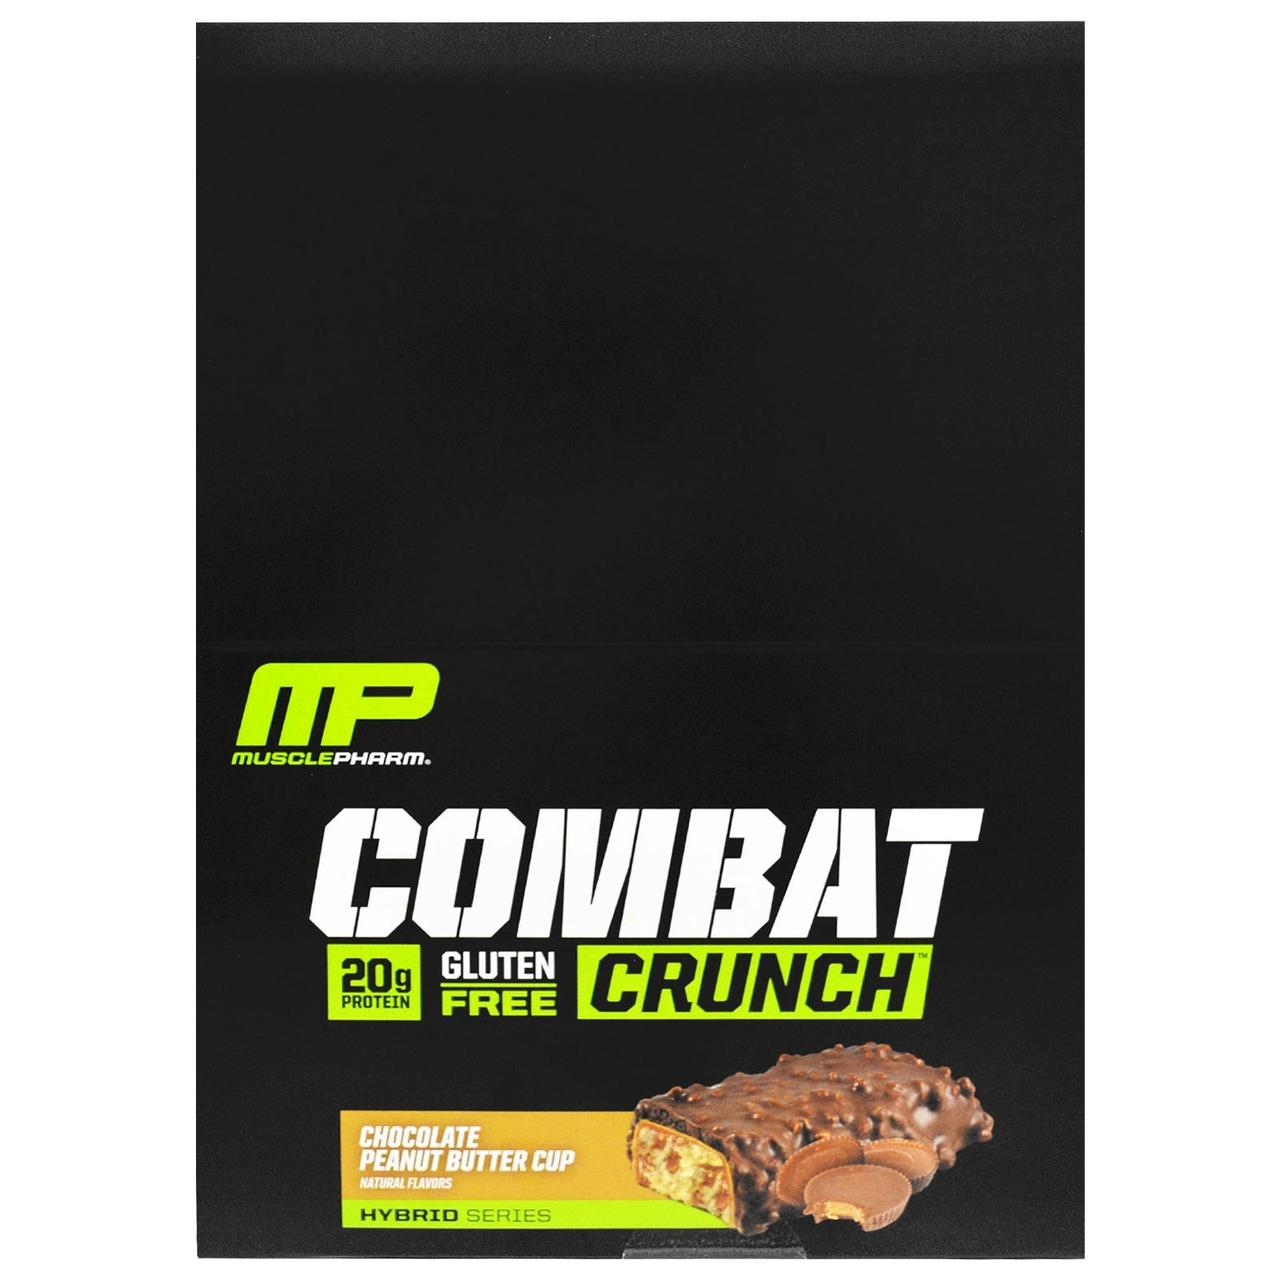 Muscle Pharm, Combat Crunch Bars, Chocolate Peanut Butter Cup, 12 Bars